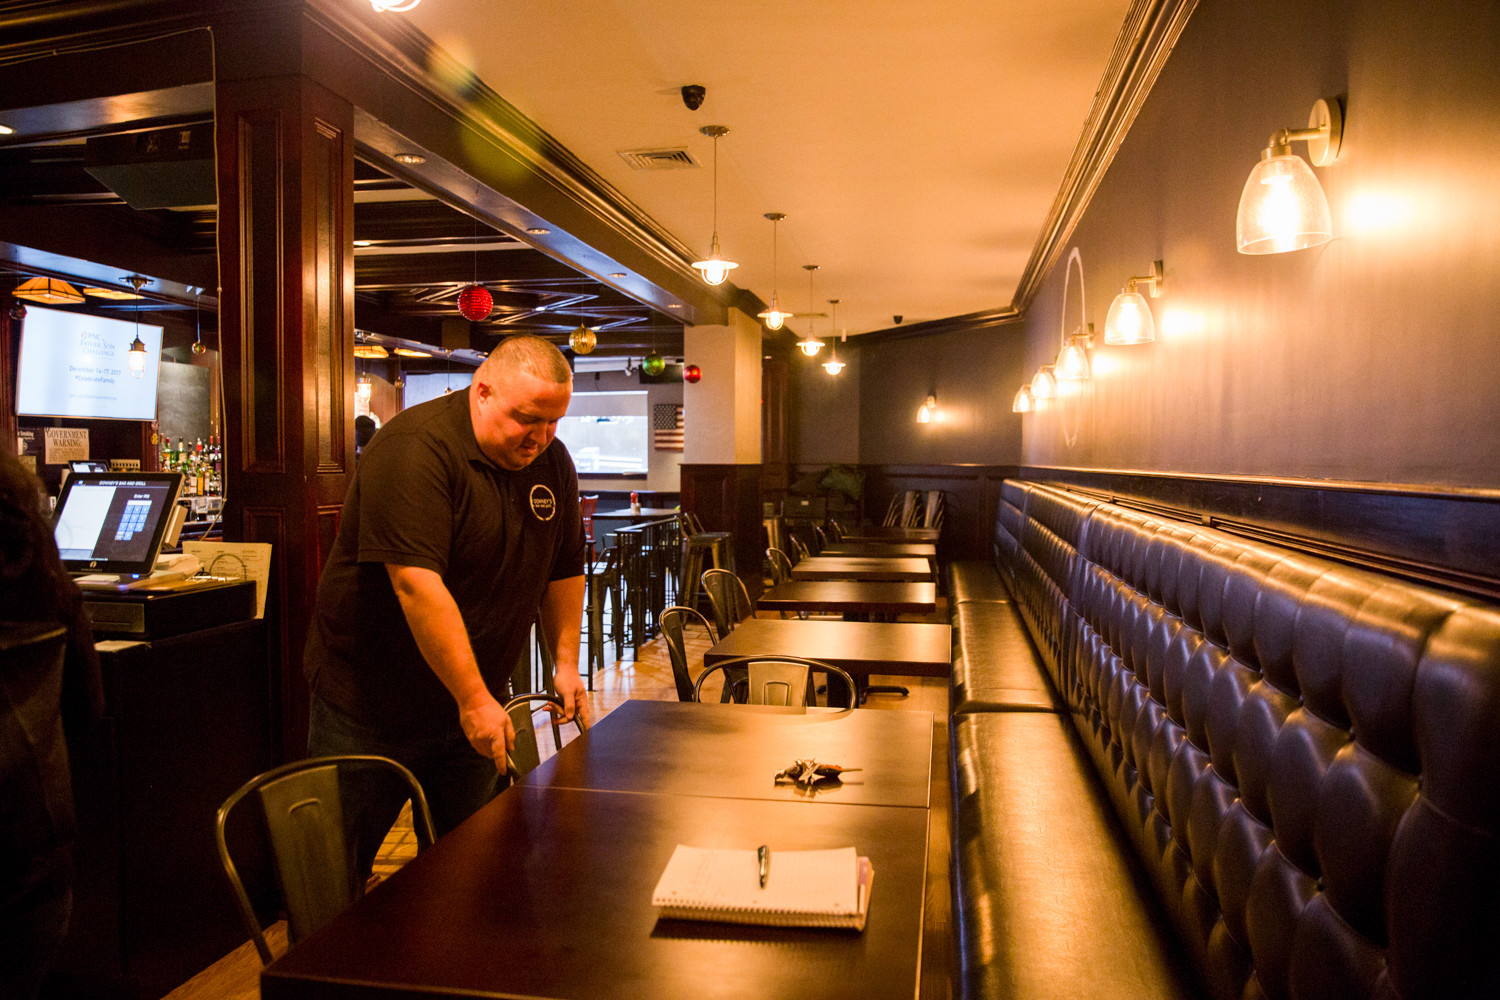 Owners Brian Downey and Bobby Cook renovated the space that was once Kelly Ryan's before opening Downey's Bar and Grill in late October. The location's new party room is already heavily booked for holiday parties.